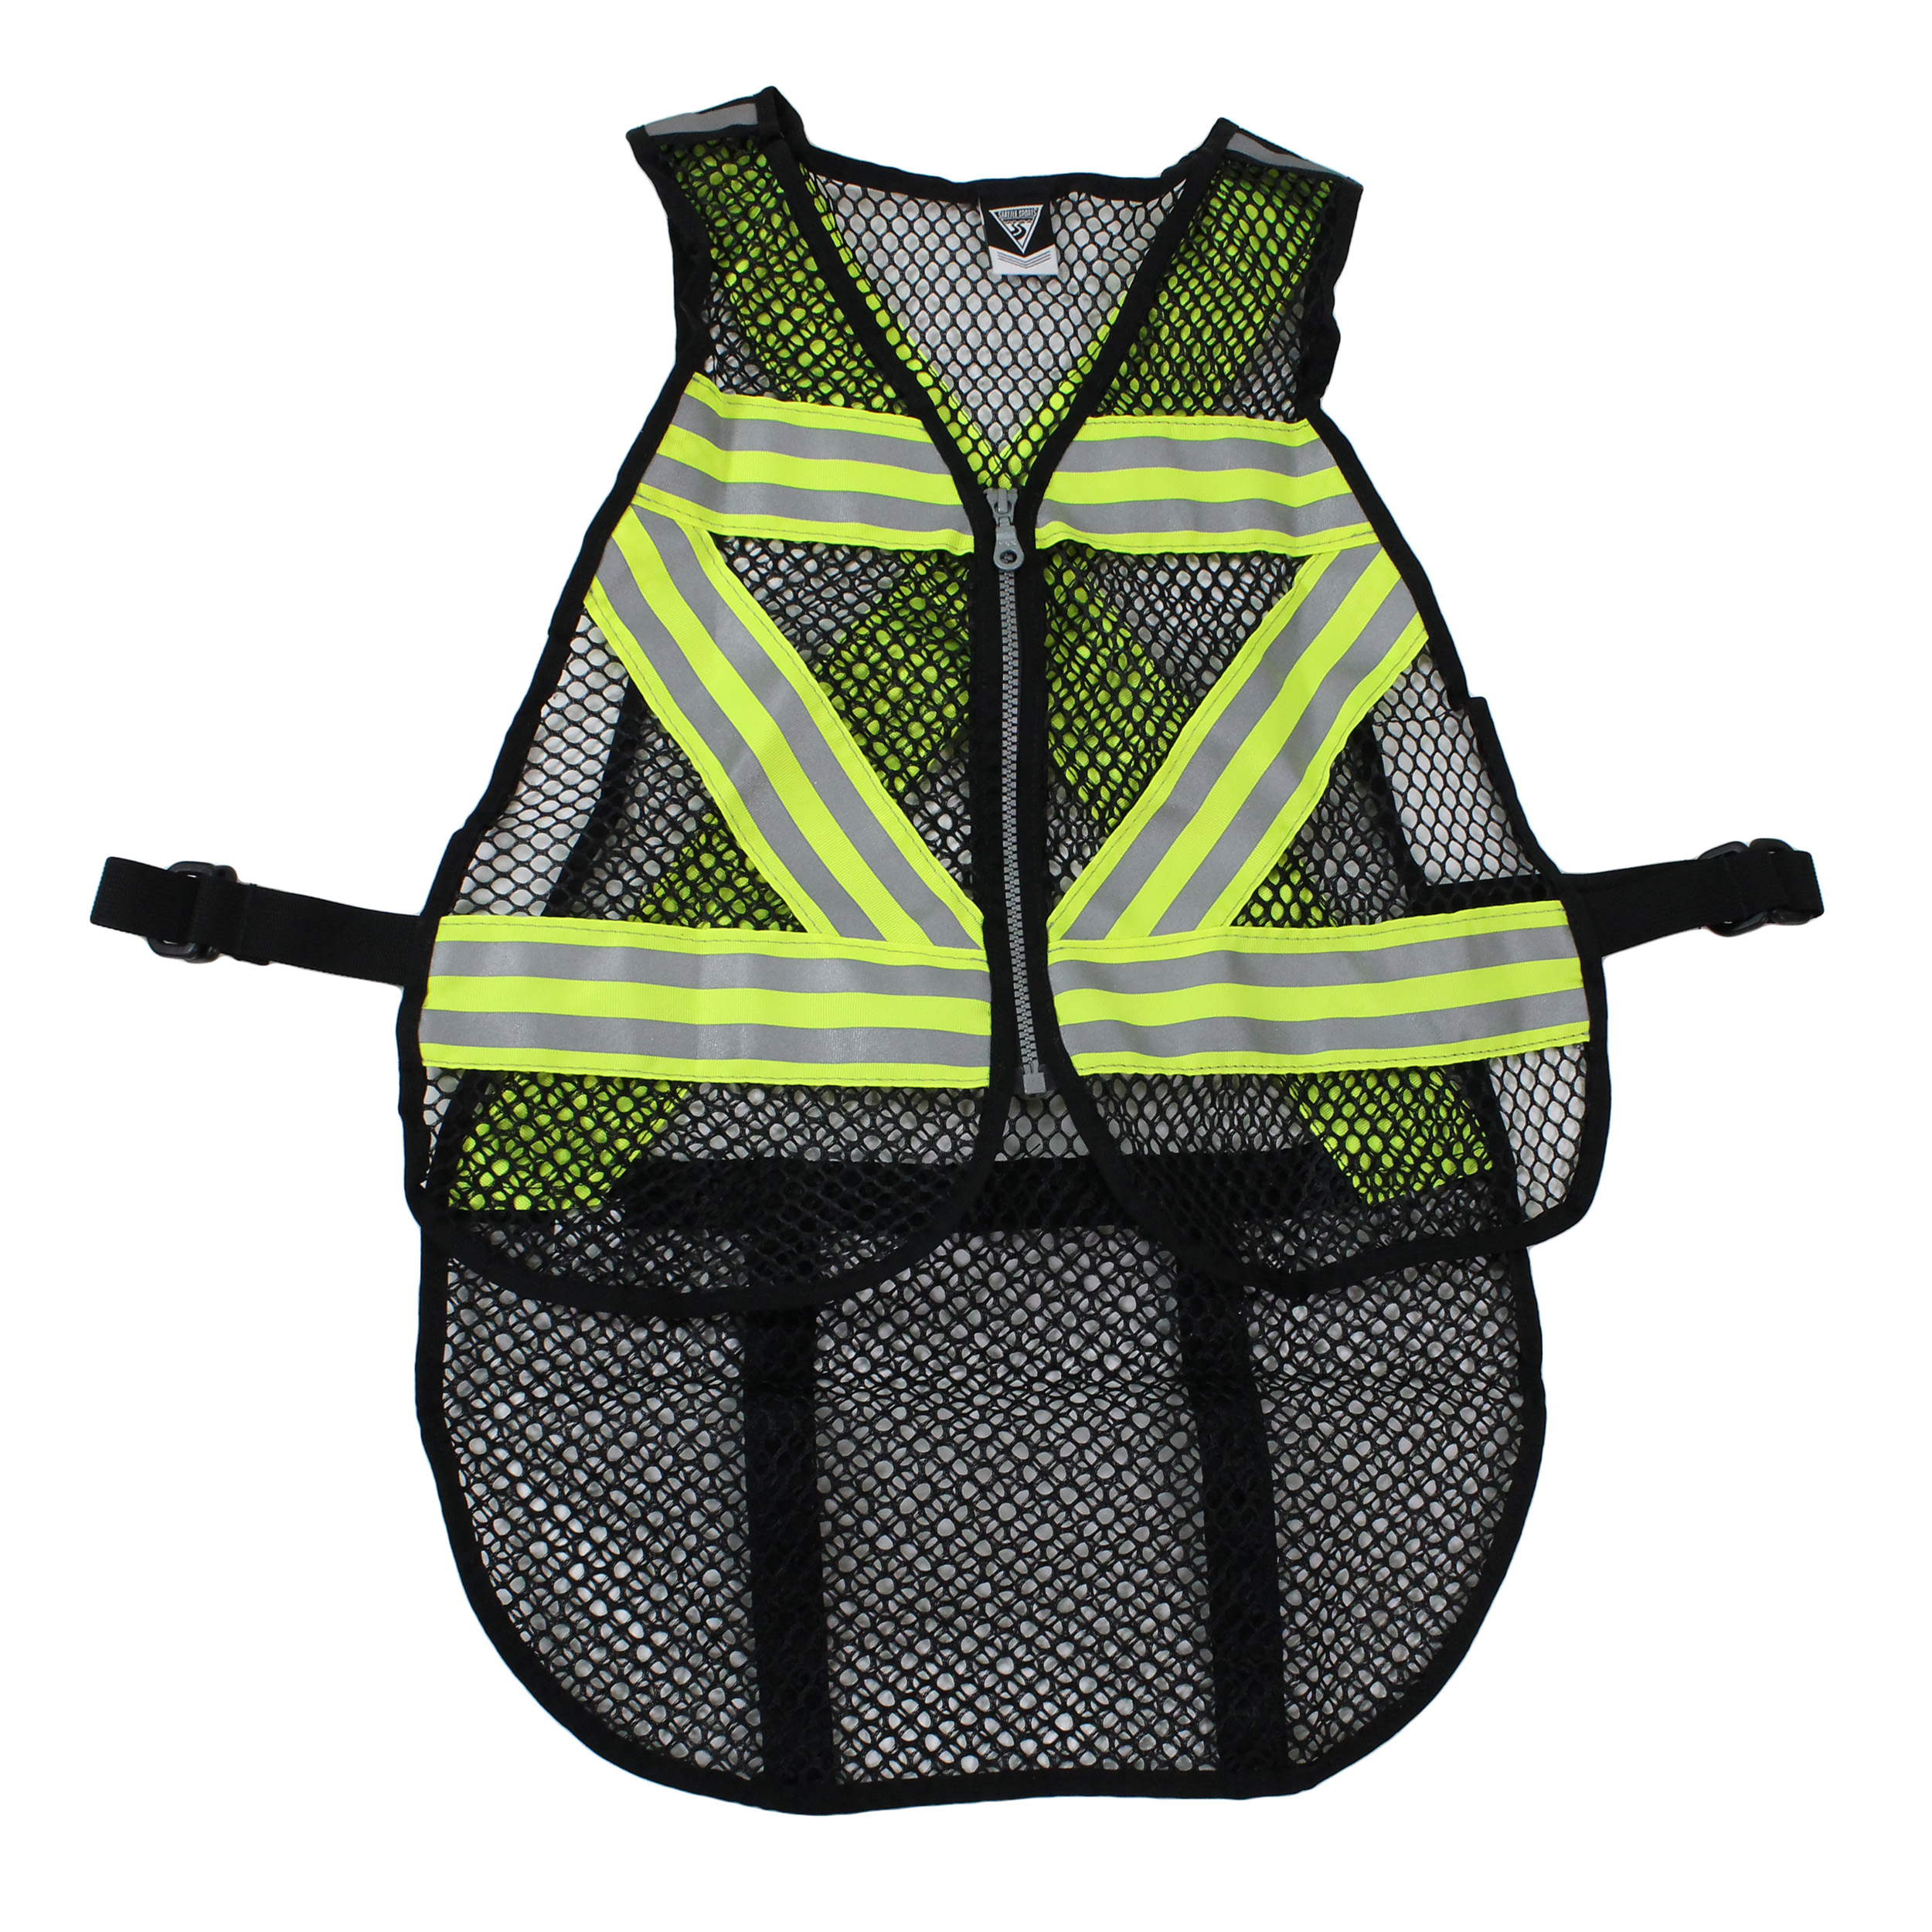 Seattle Sports Cycling Safety Vest Green White by Seattle Sports